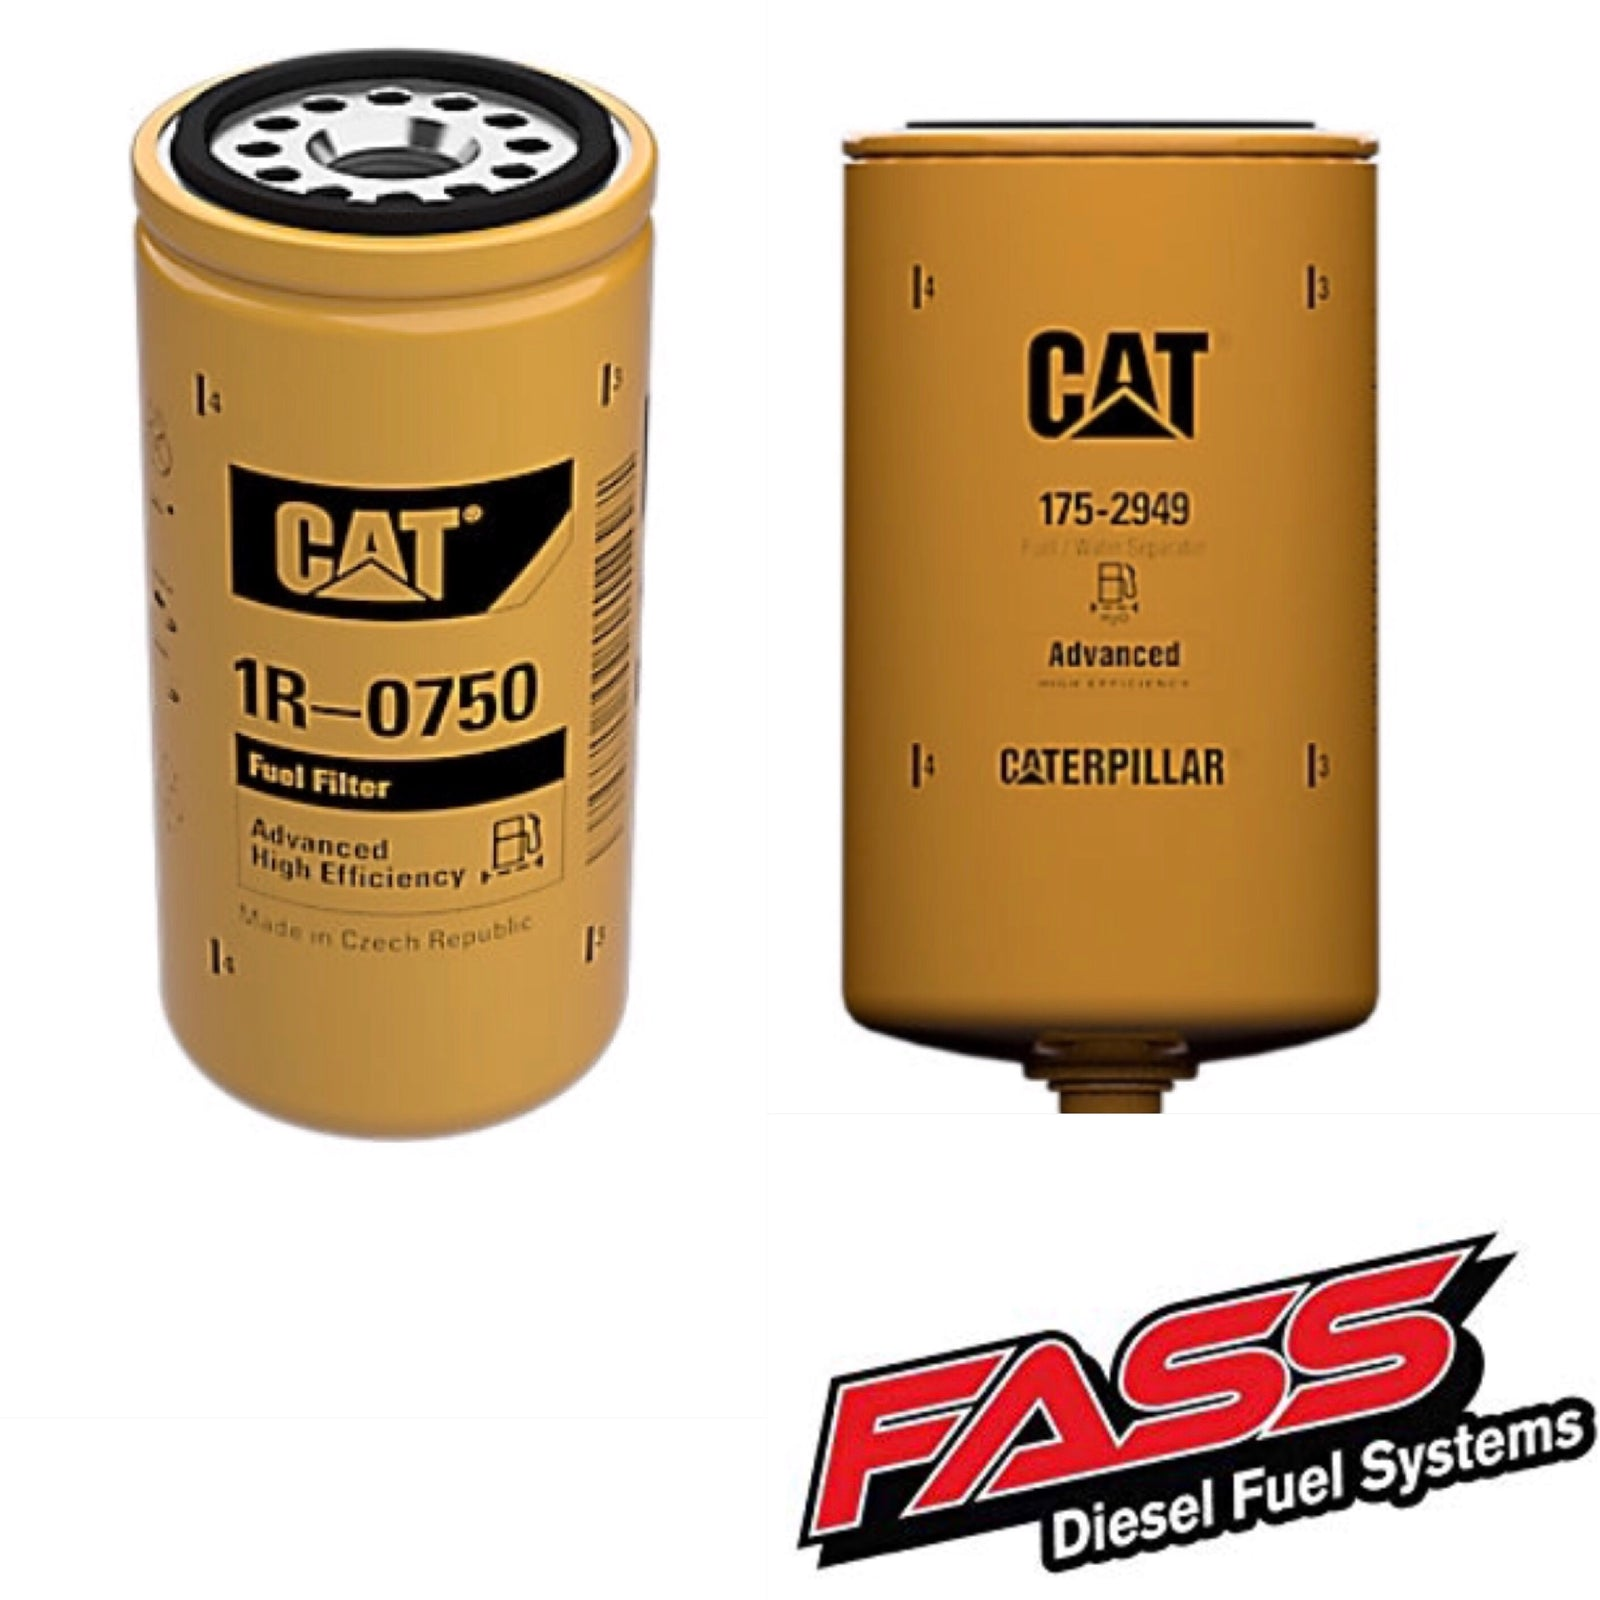 FASS Filter Upgrade